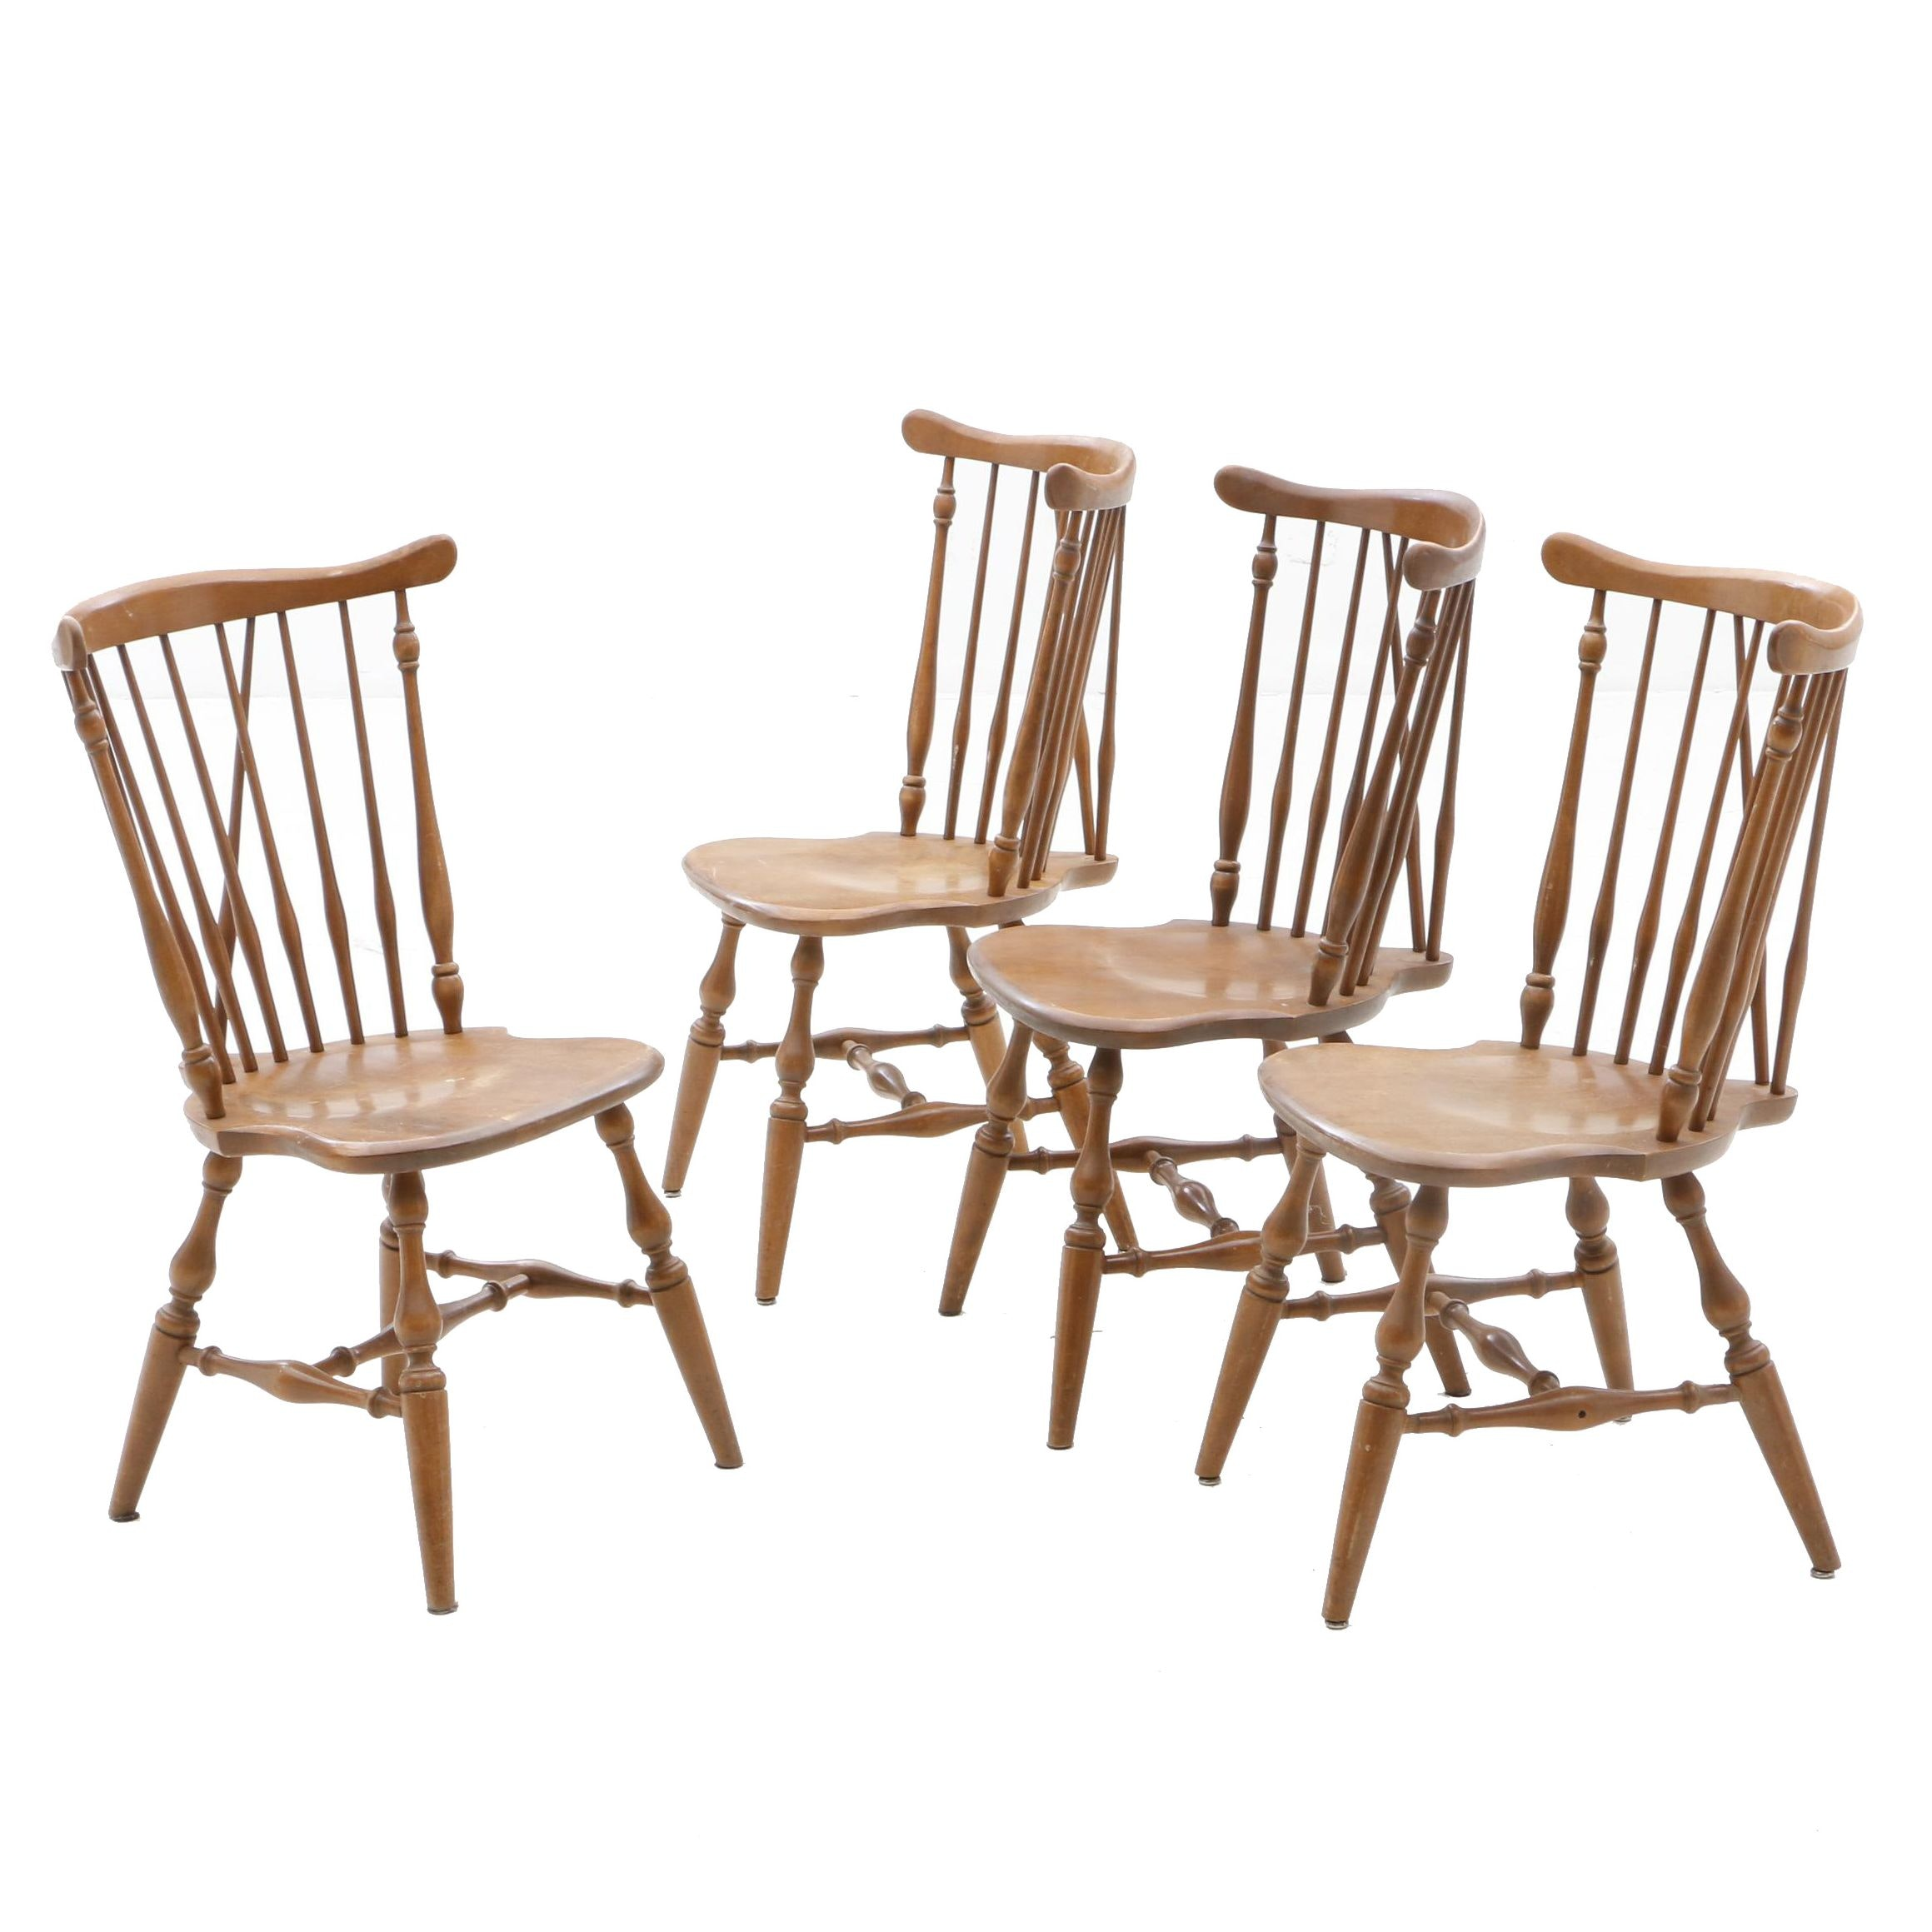 Ethan Allen by Baumritter Windsor Chairs